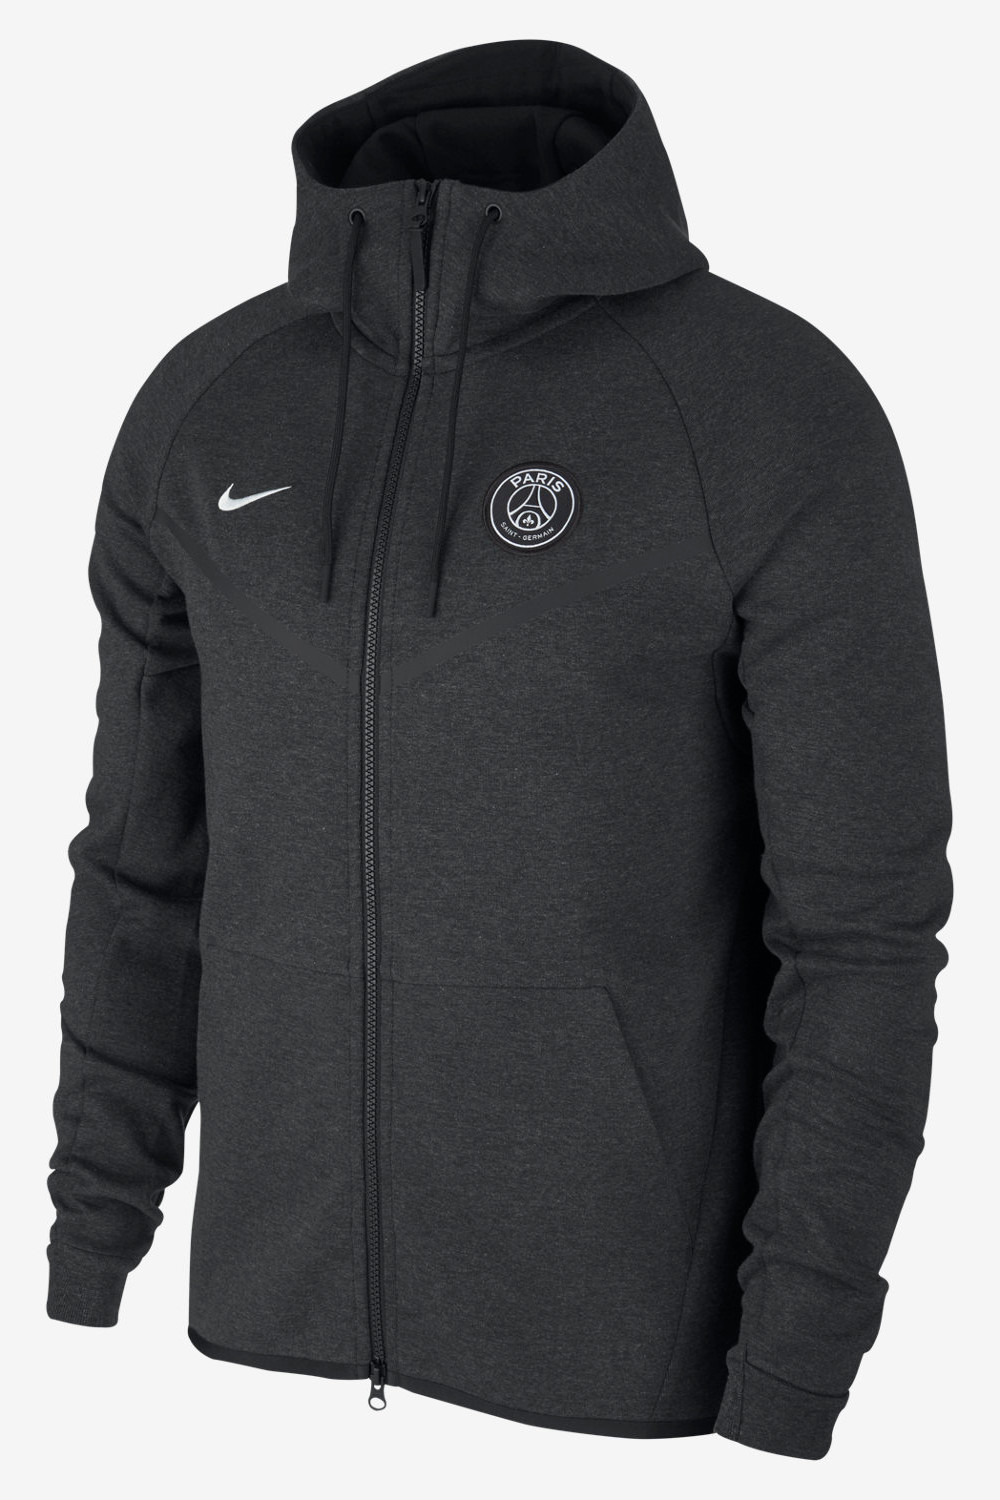 psg nike training jacke jacket schwarz tech fleece. Black Bedroom Furniture Sets. Home Design Ideas